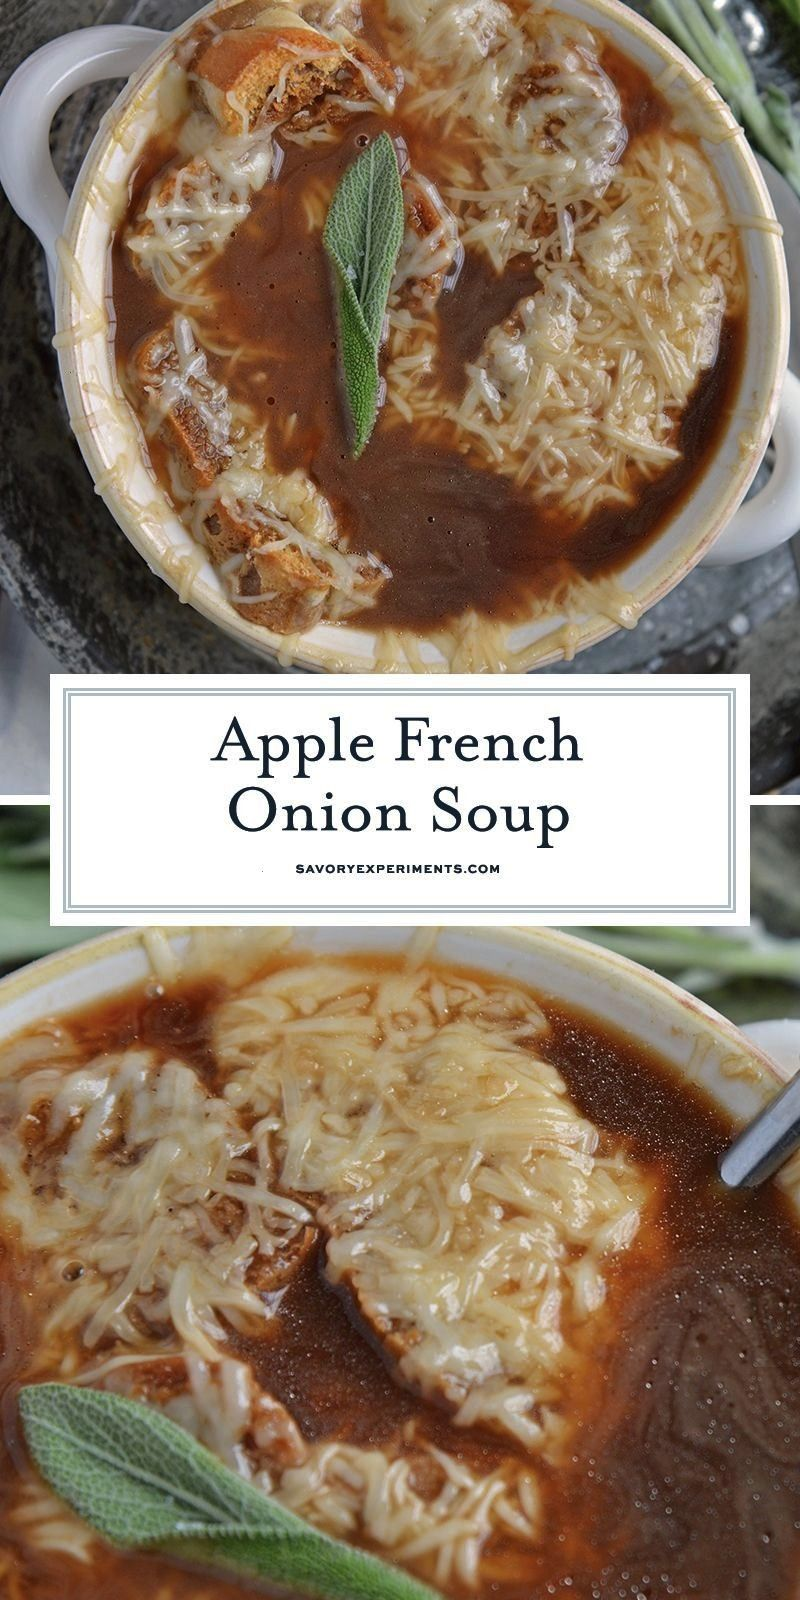 French Onion Soup combines a robust French Onion Soup Recipe using sweet apples for flavor and text